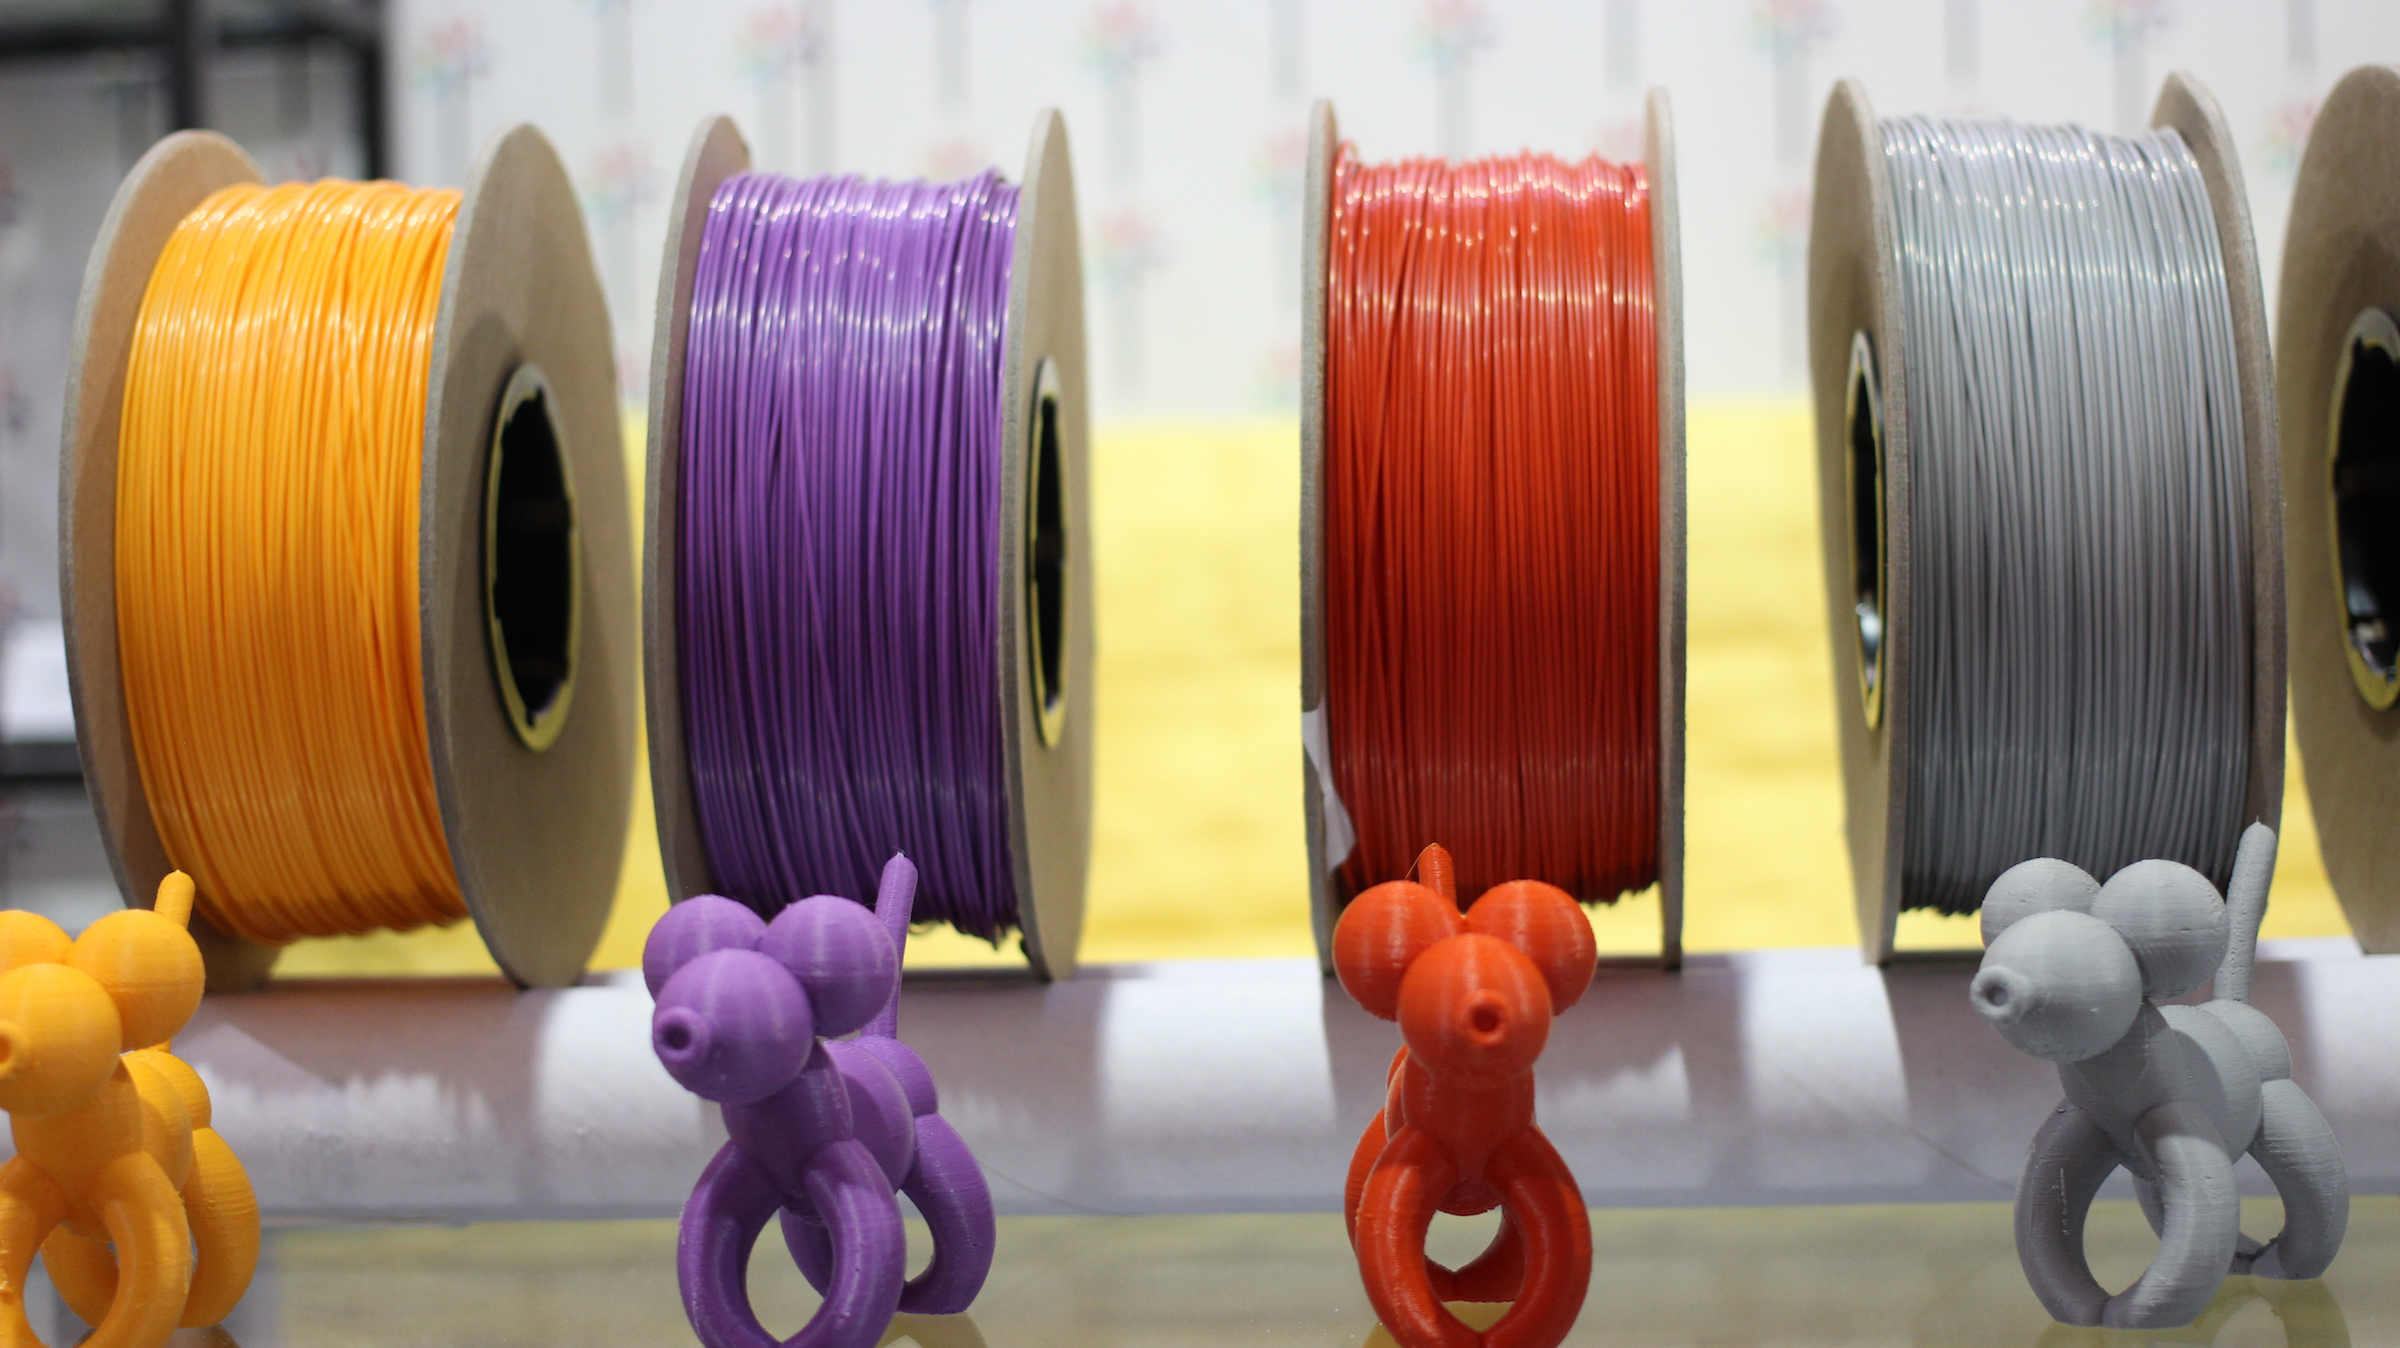 Example of thermoplastic filaments used with FDM 3D Printing. (Source: http://bit.ly/2wXEctw)